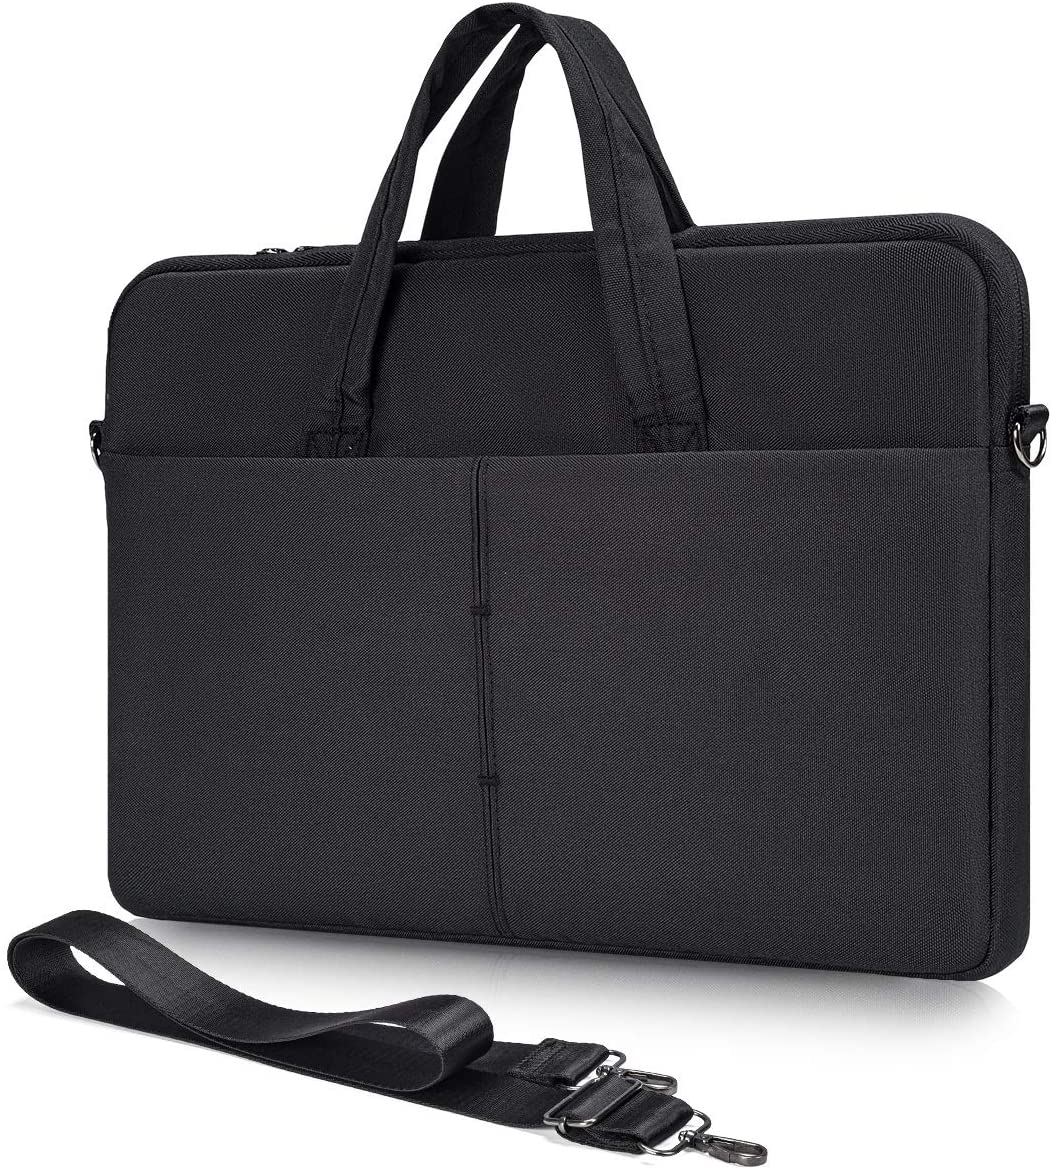 15.6 Inch Laptop Shoulder Case Bag for Acer Aspire 5/Chromebook 15/ Predator Helios 300, Asus Vivobook/Chromebook/TUF 15.6, HP Pavilion Envy 15.6, Dell Inspiron 15 5000 Carrying Case(Black)